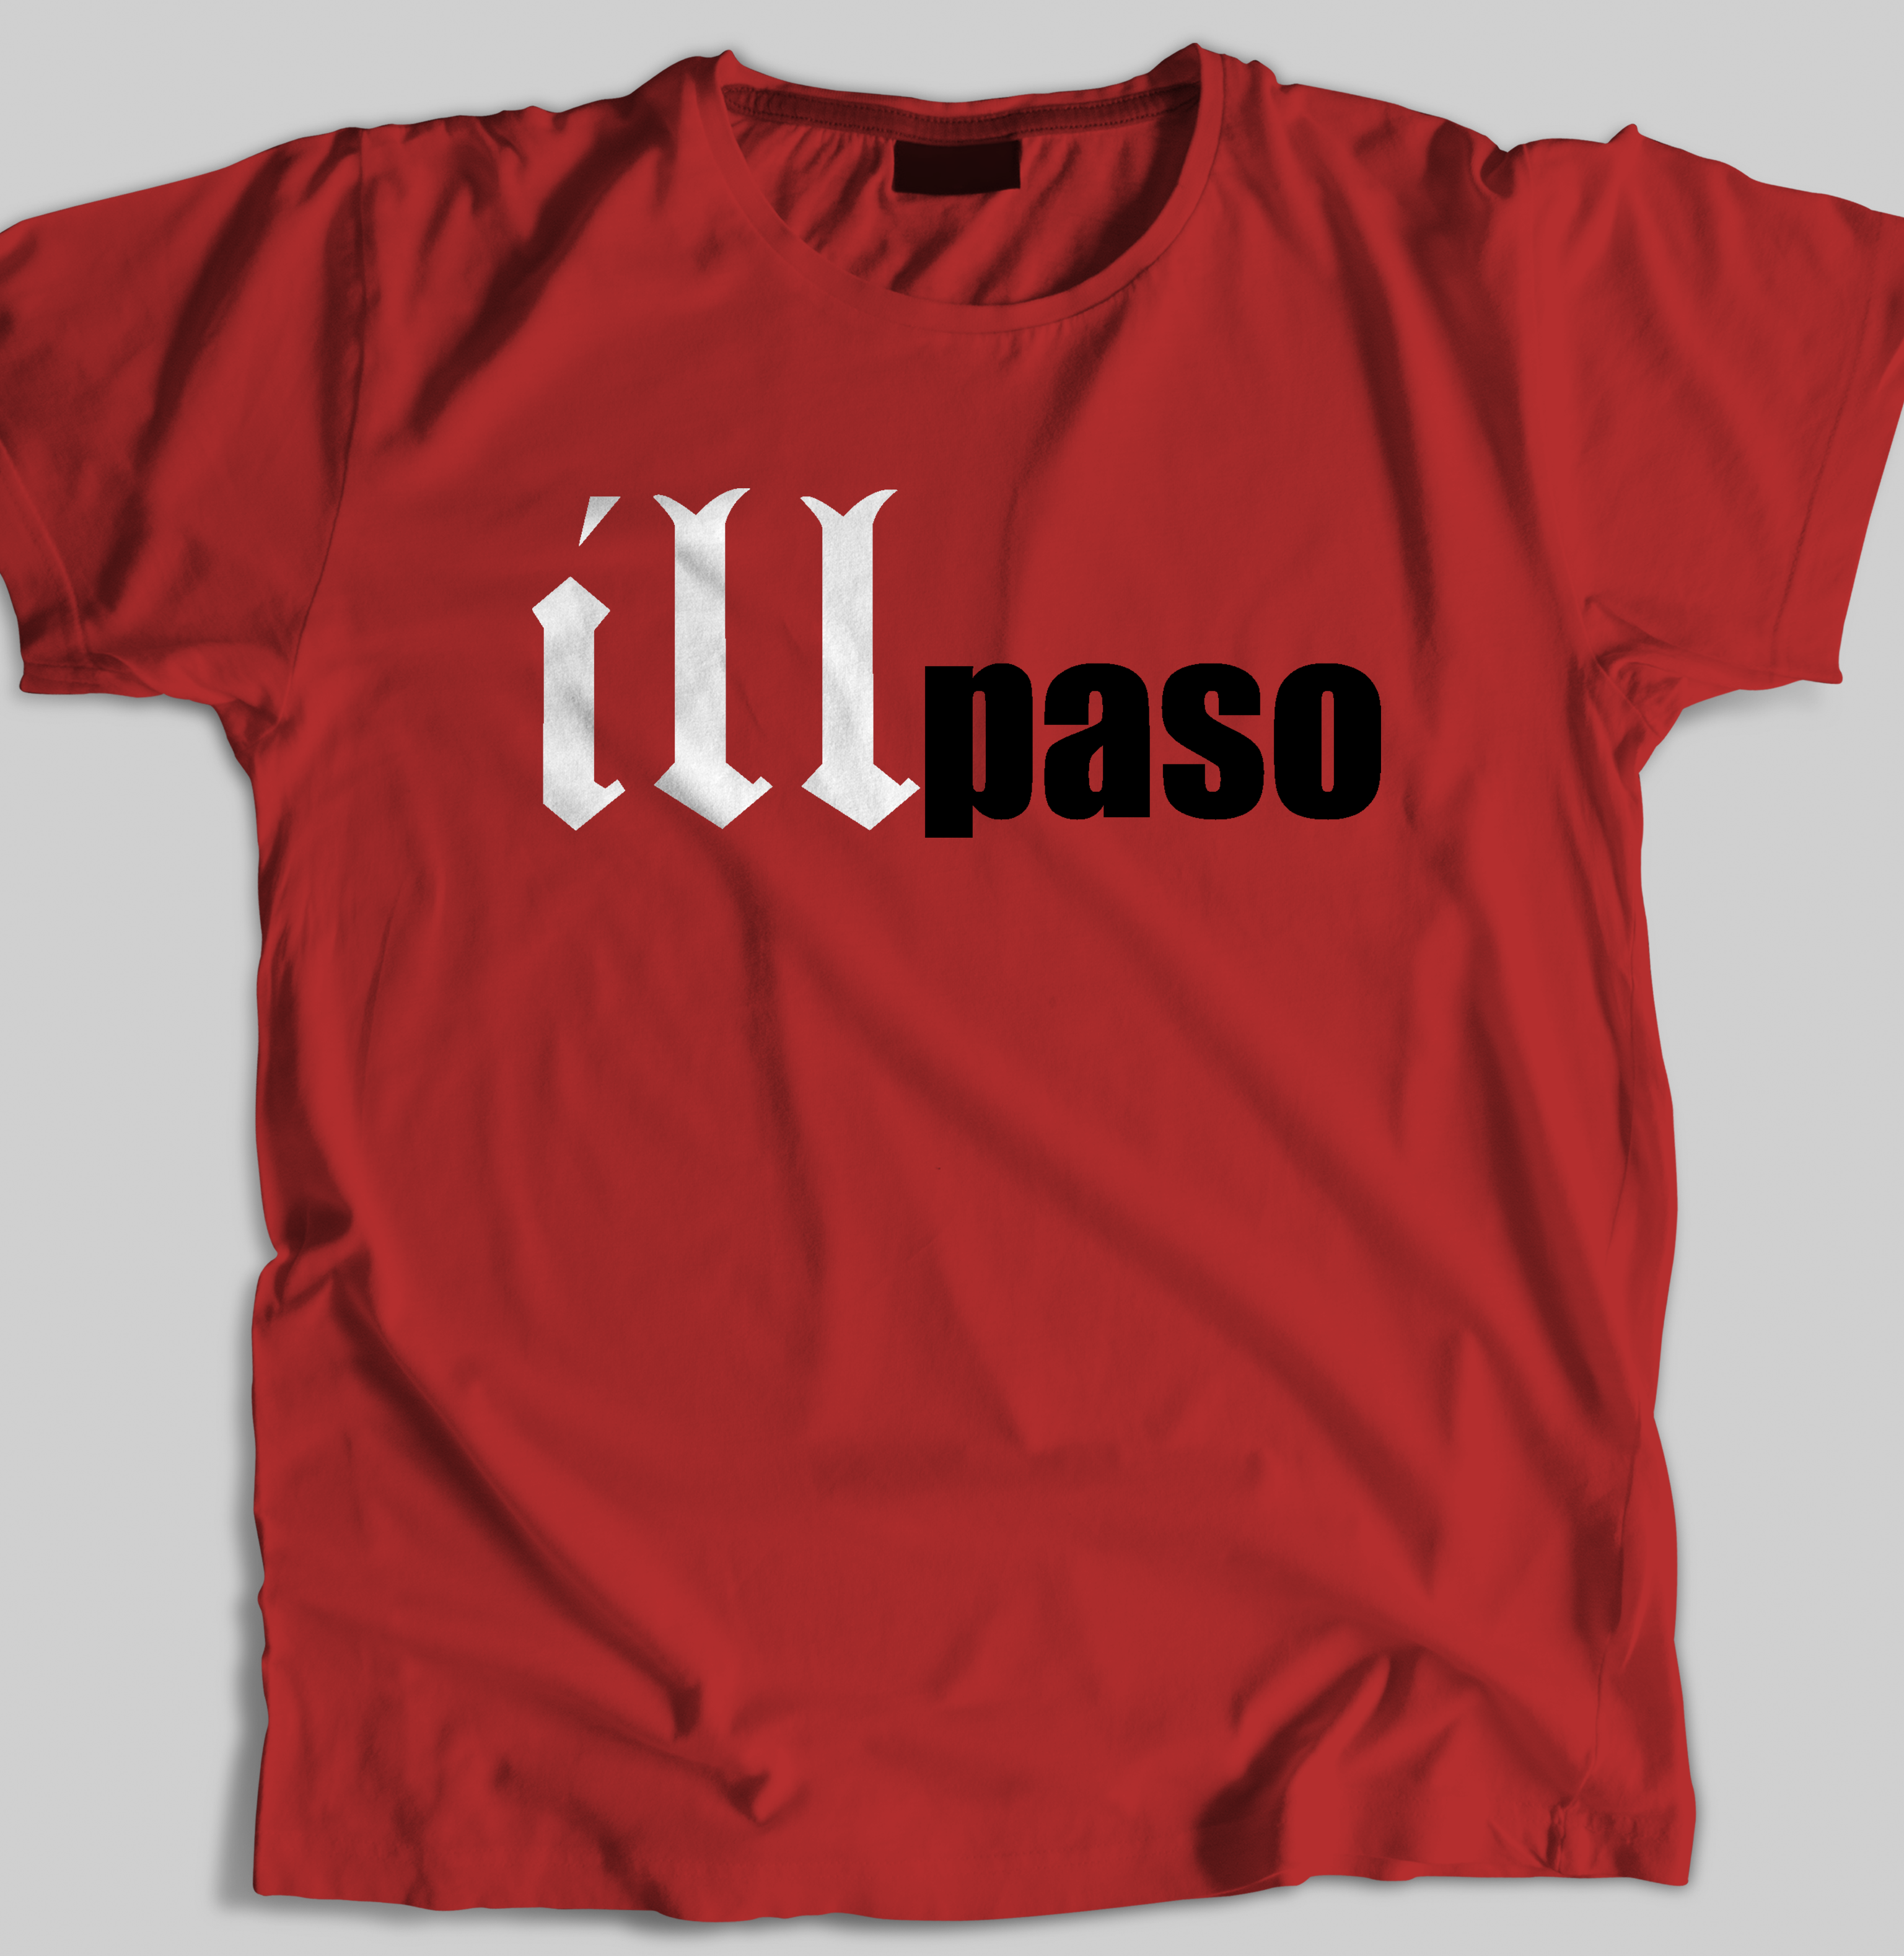 """illmatic Tribute"" Men's T-shirt (Red) by illpaso"